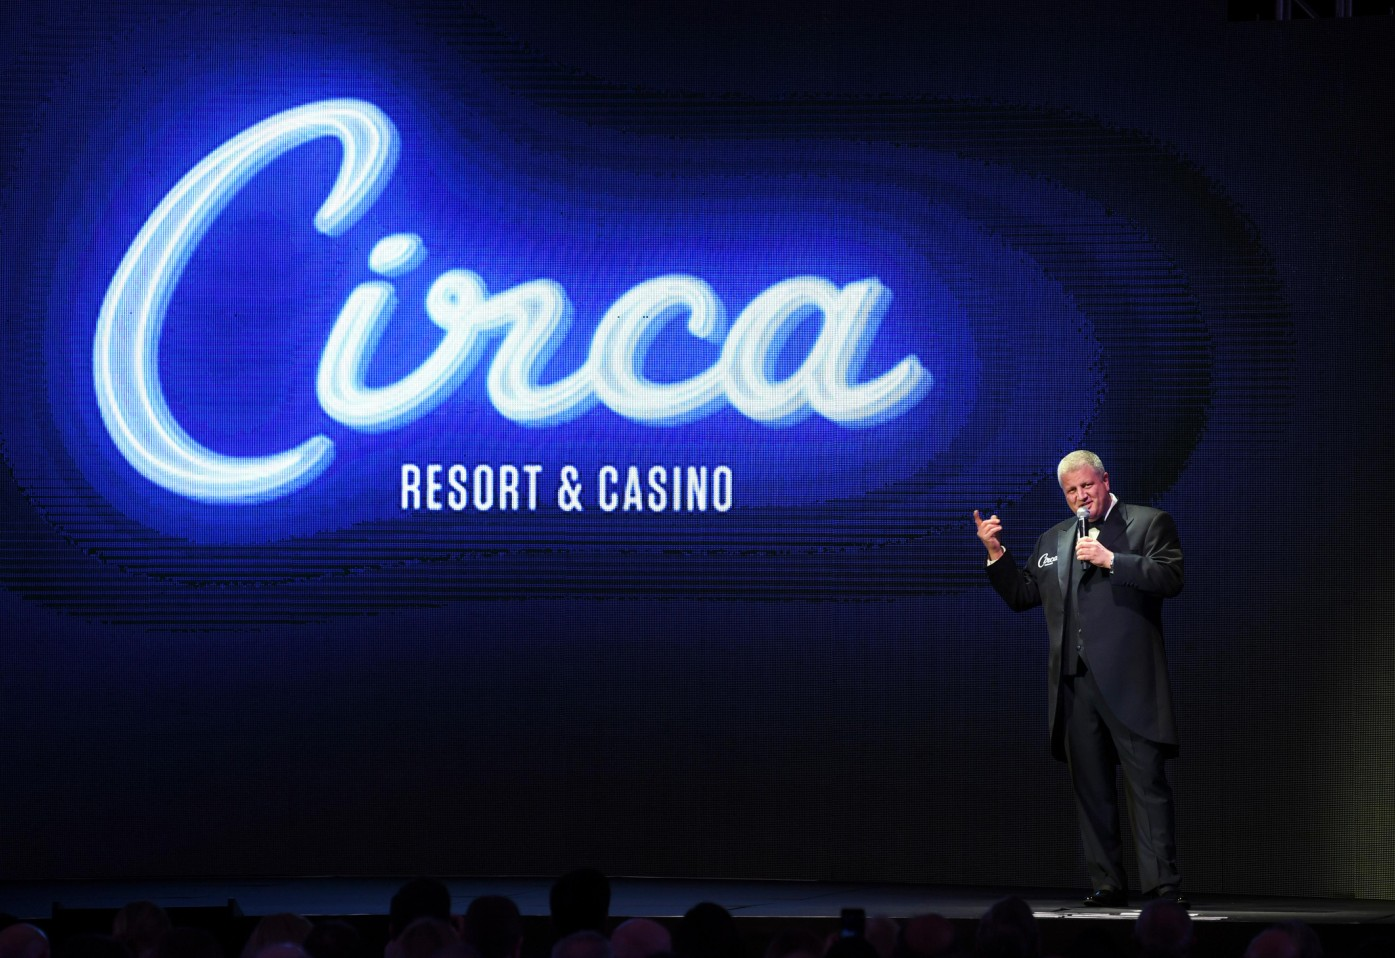 Derek Stevens announces Circa Resort & Casino in Downtown Las Vegas to open in 2020